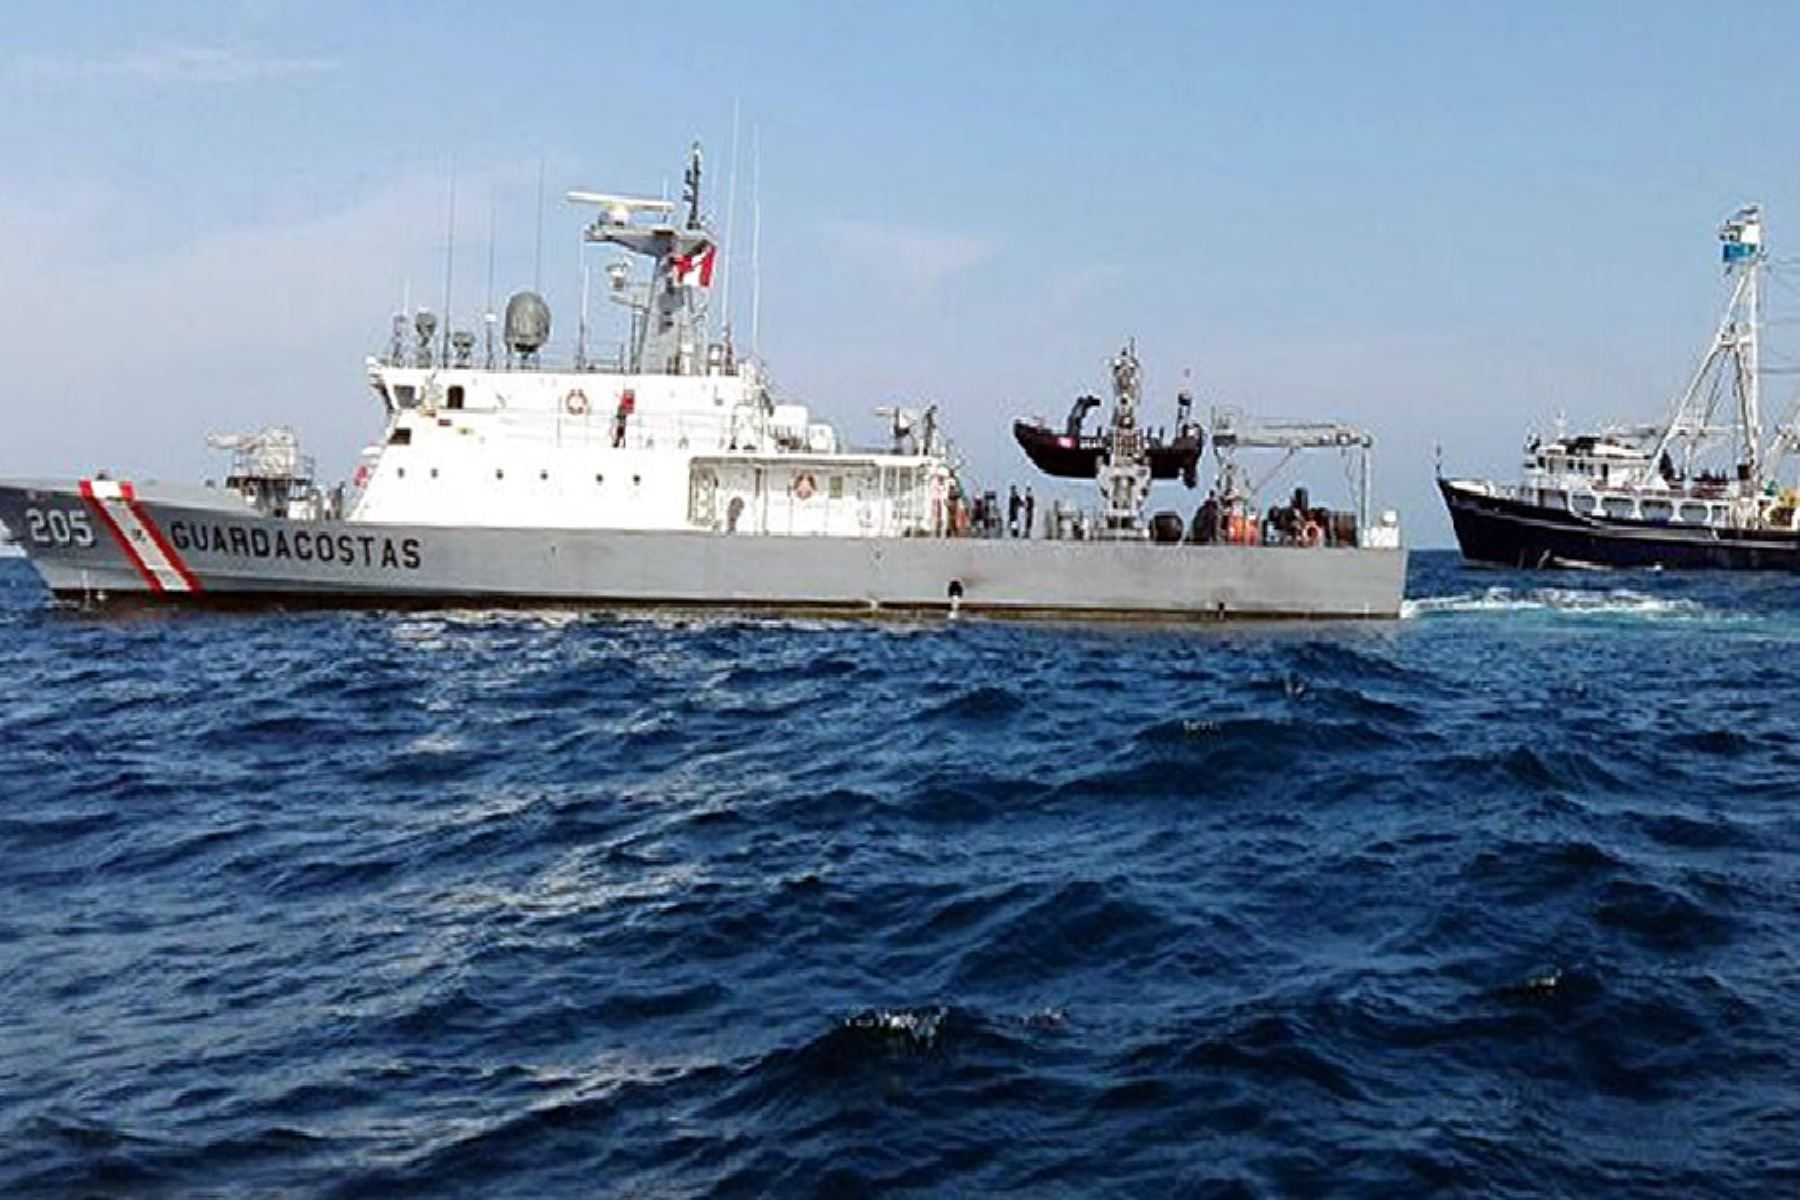 Illegal Fishing Represents Around US $ 23,000 Million a Year Worldwide